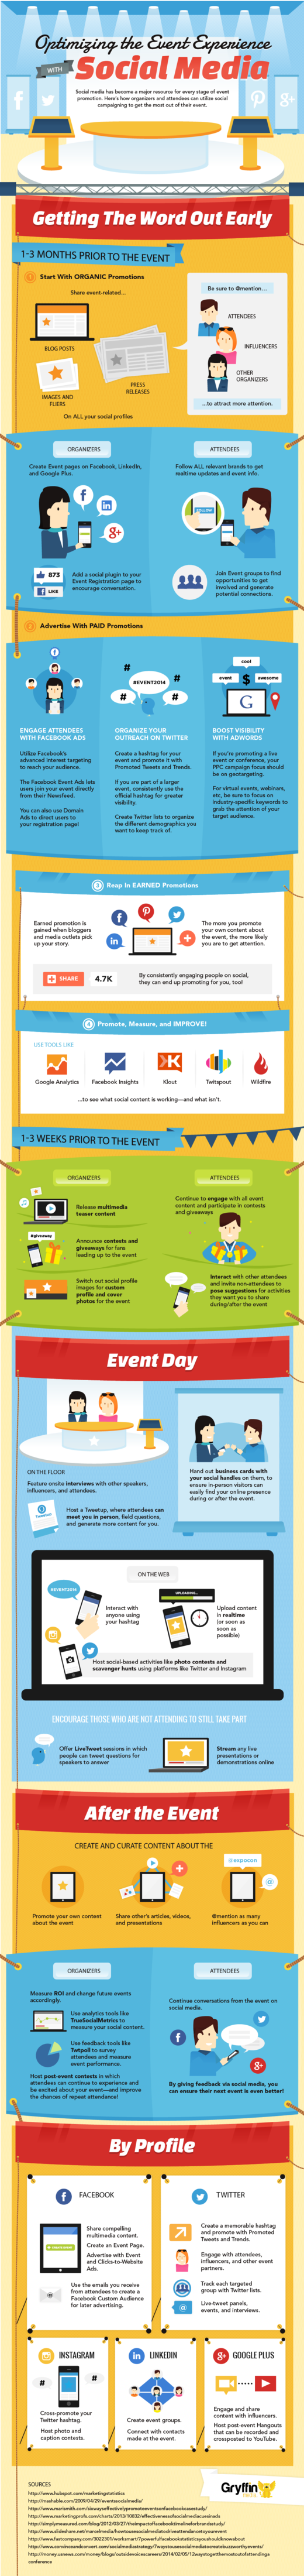 How to use social media to promote events